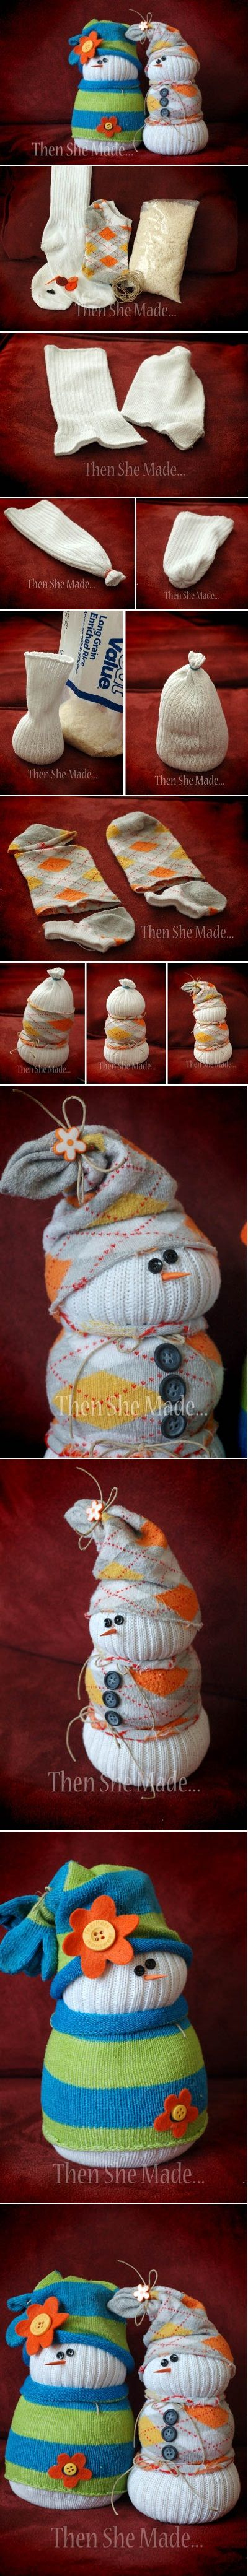 Adorable Sock Snowmen https://www.facebook.com/pages/Rustic-Farmhouse-Decor/636679889706127